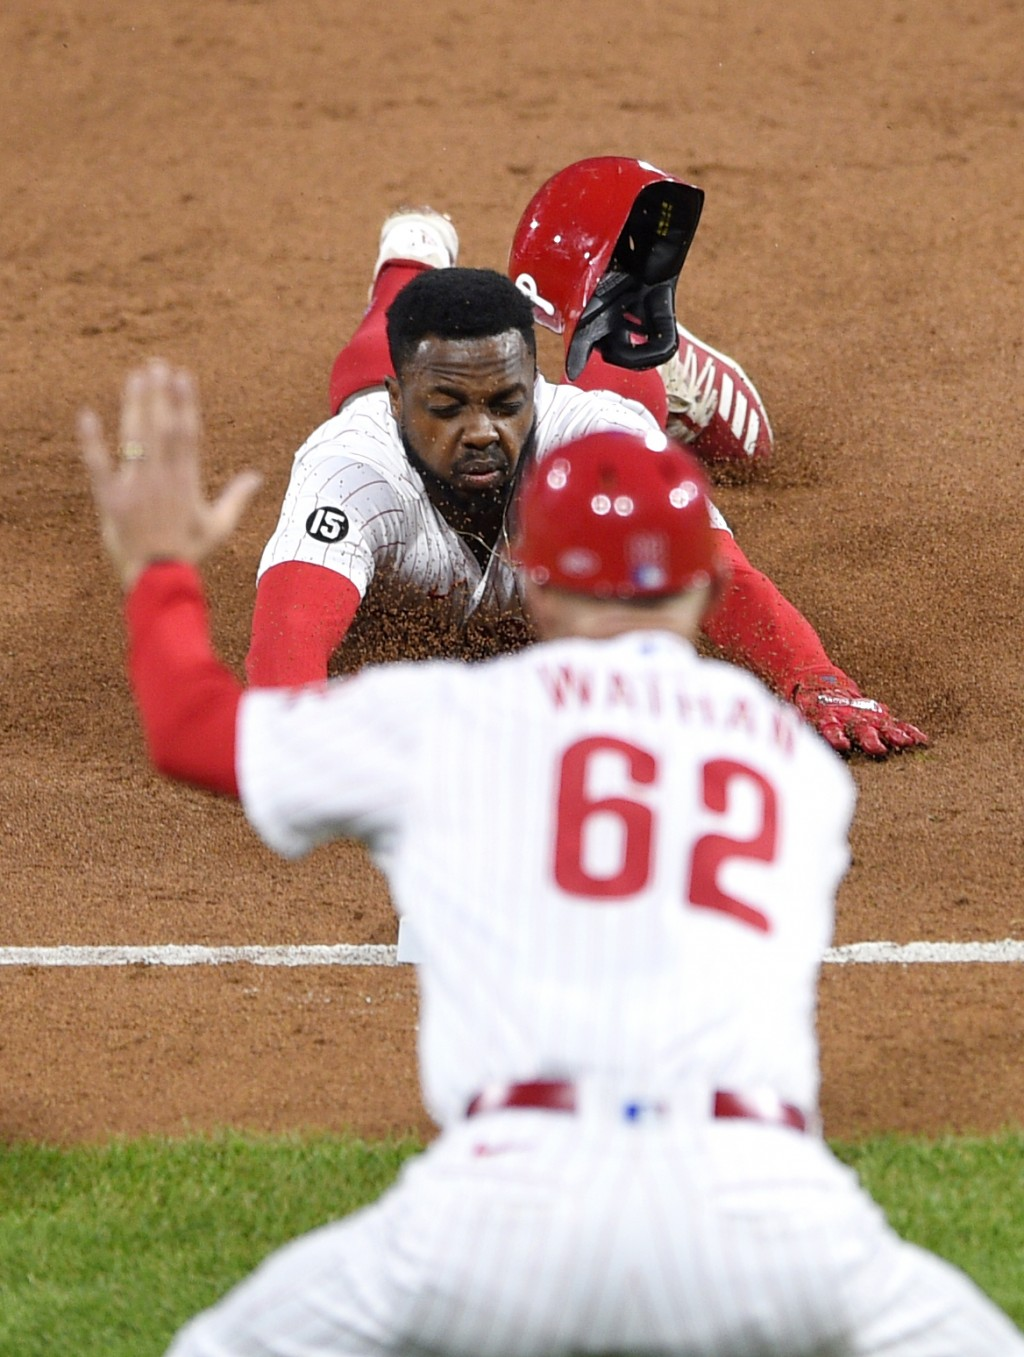 Philadelphia Phillies' Roman Quinn dives into third base safely as third-base coach Dusty Wathan (62) directs during the second inning of a baseball g...